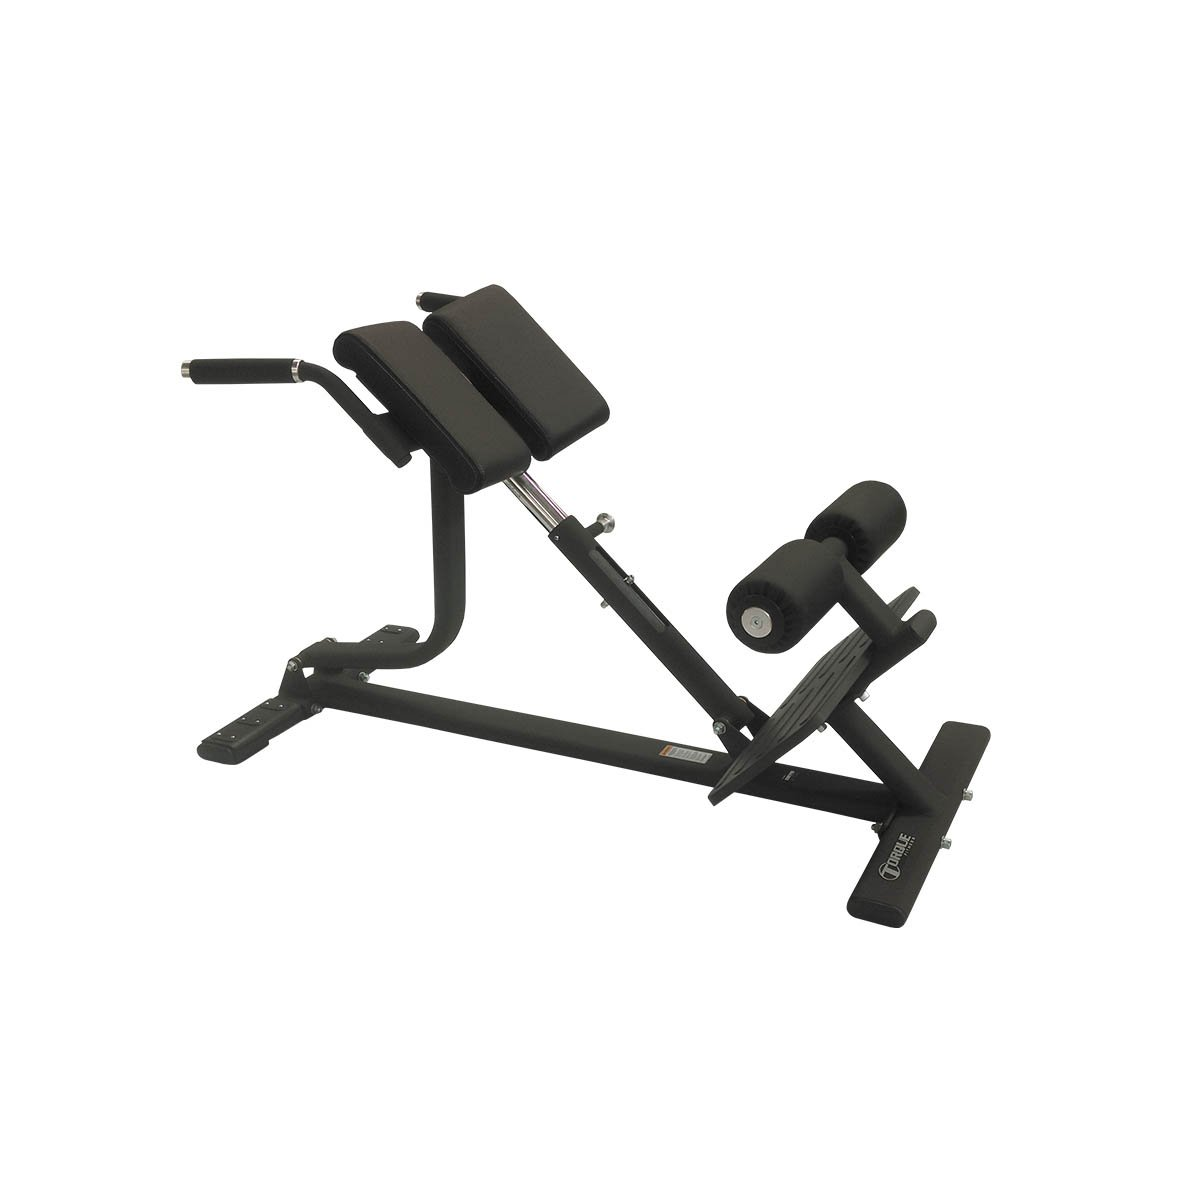 Torque Fitness Back Extension Bench, Black